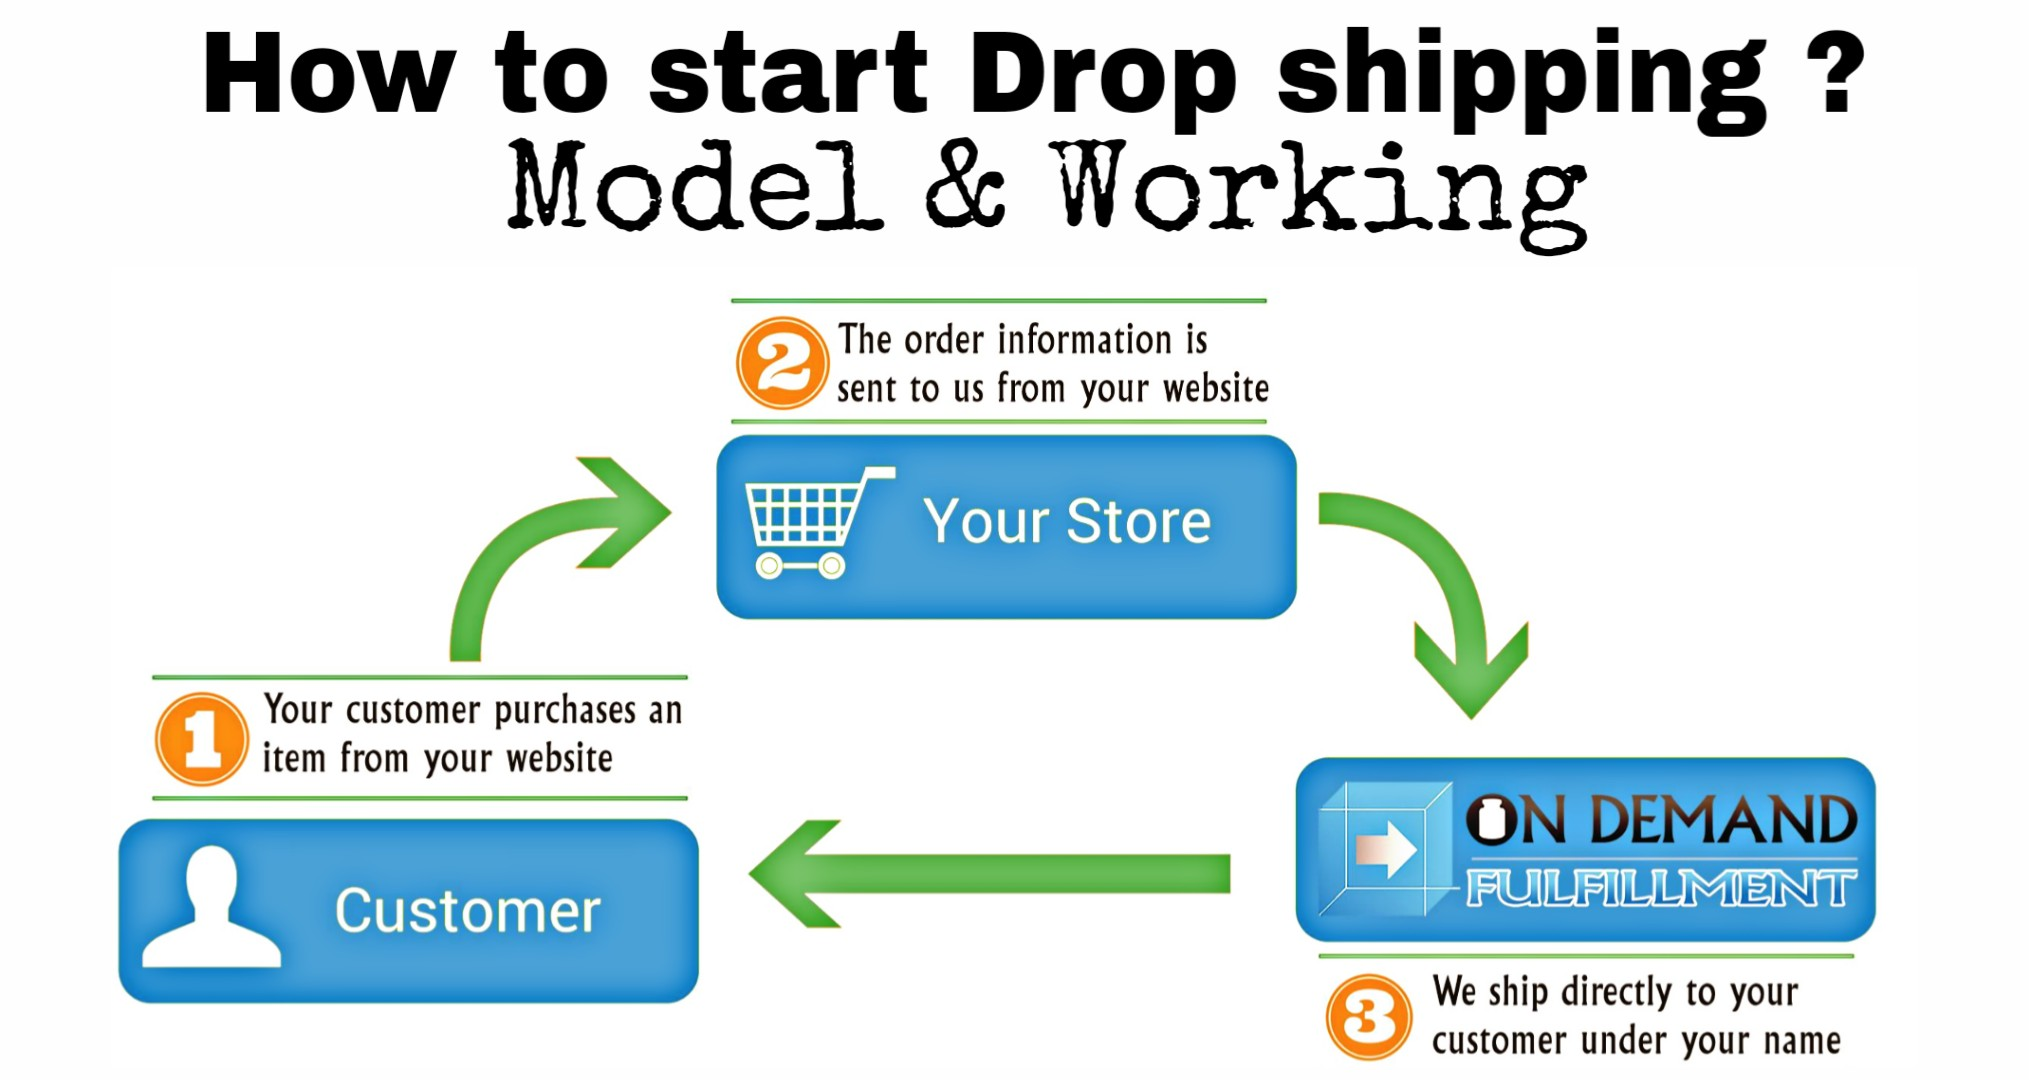 How to start drop shipping